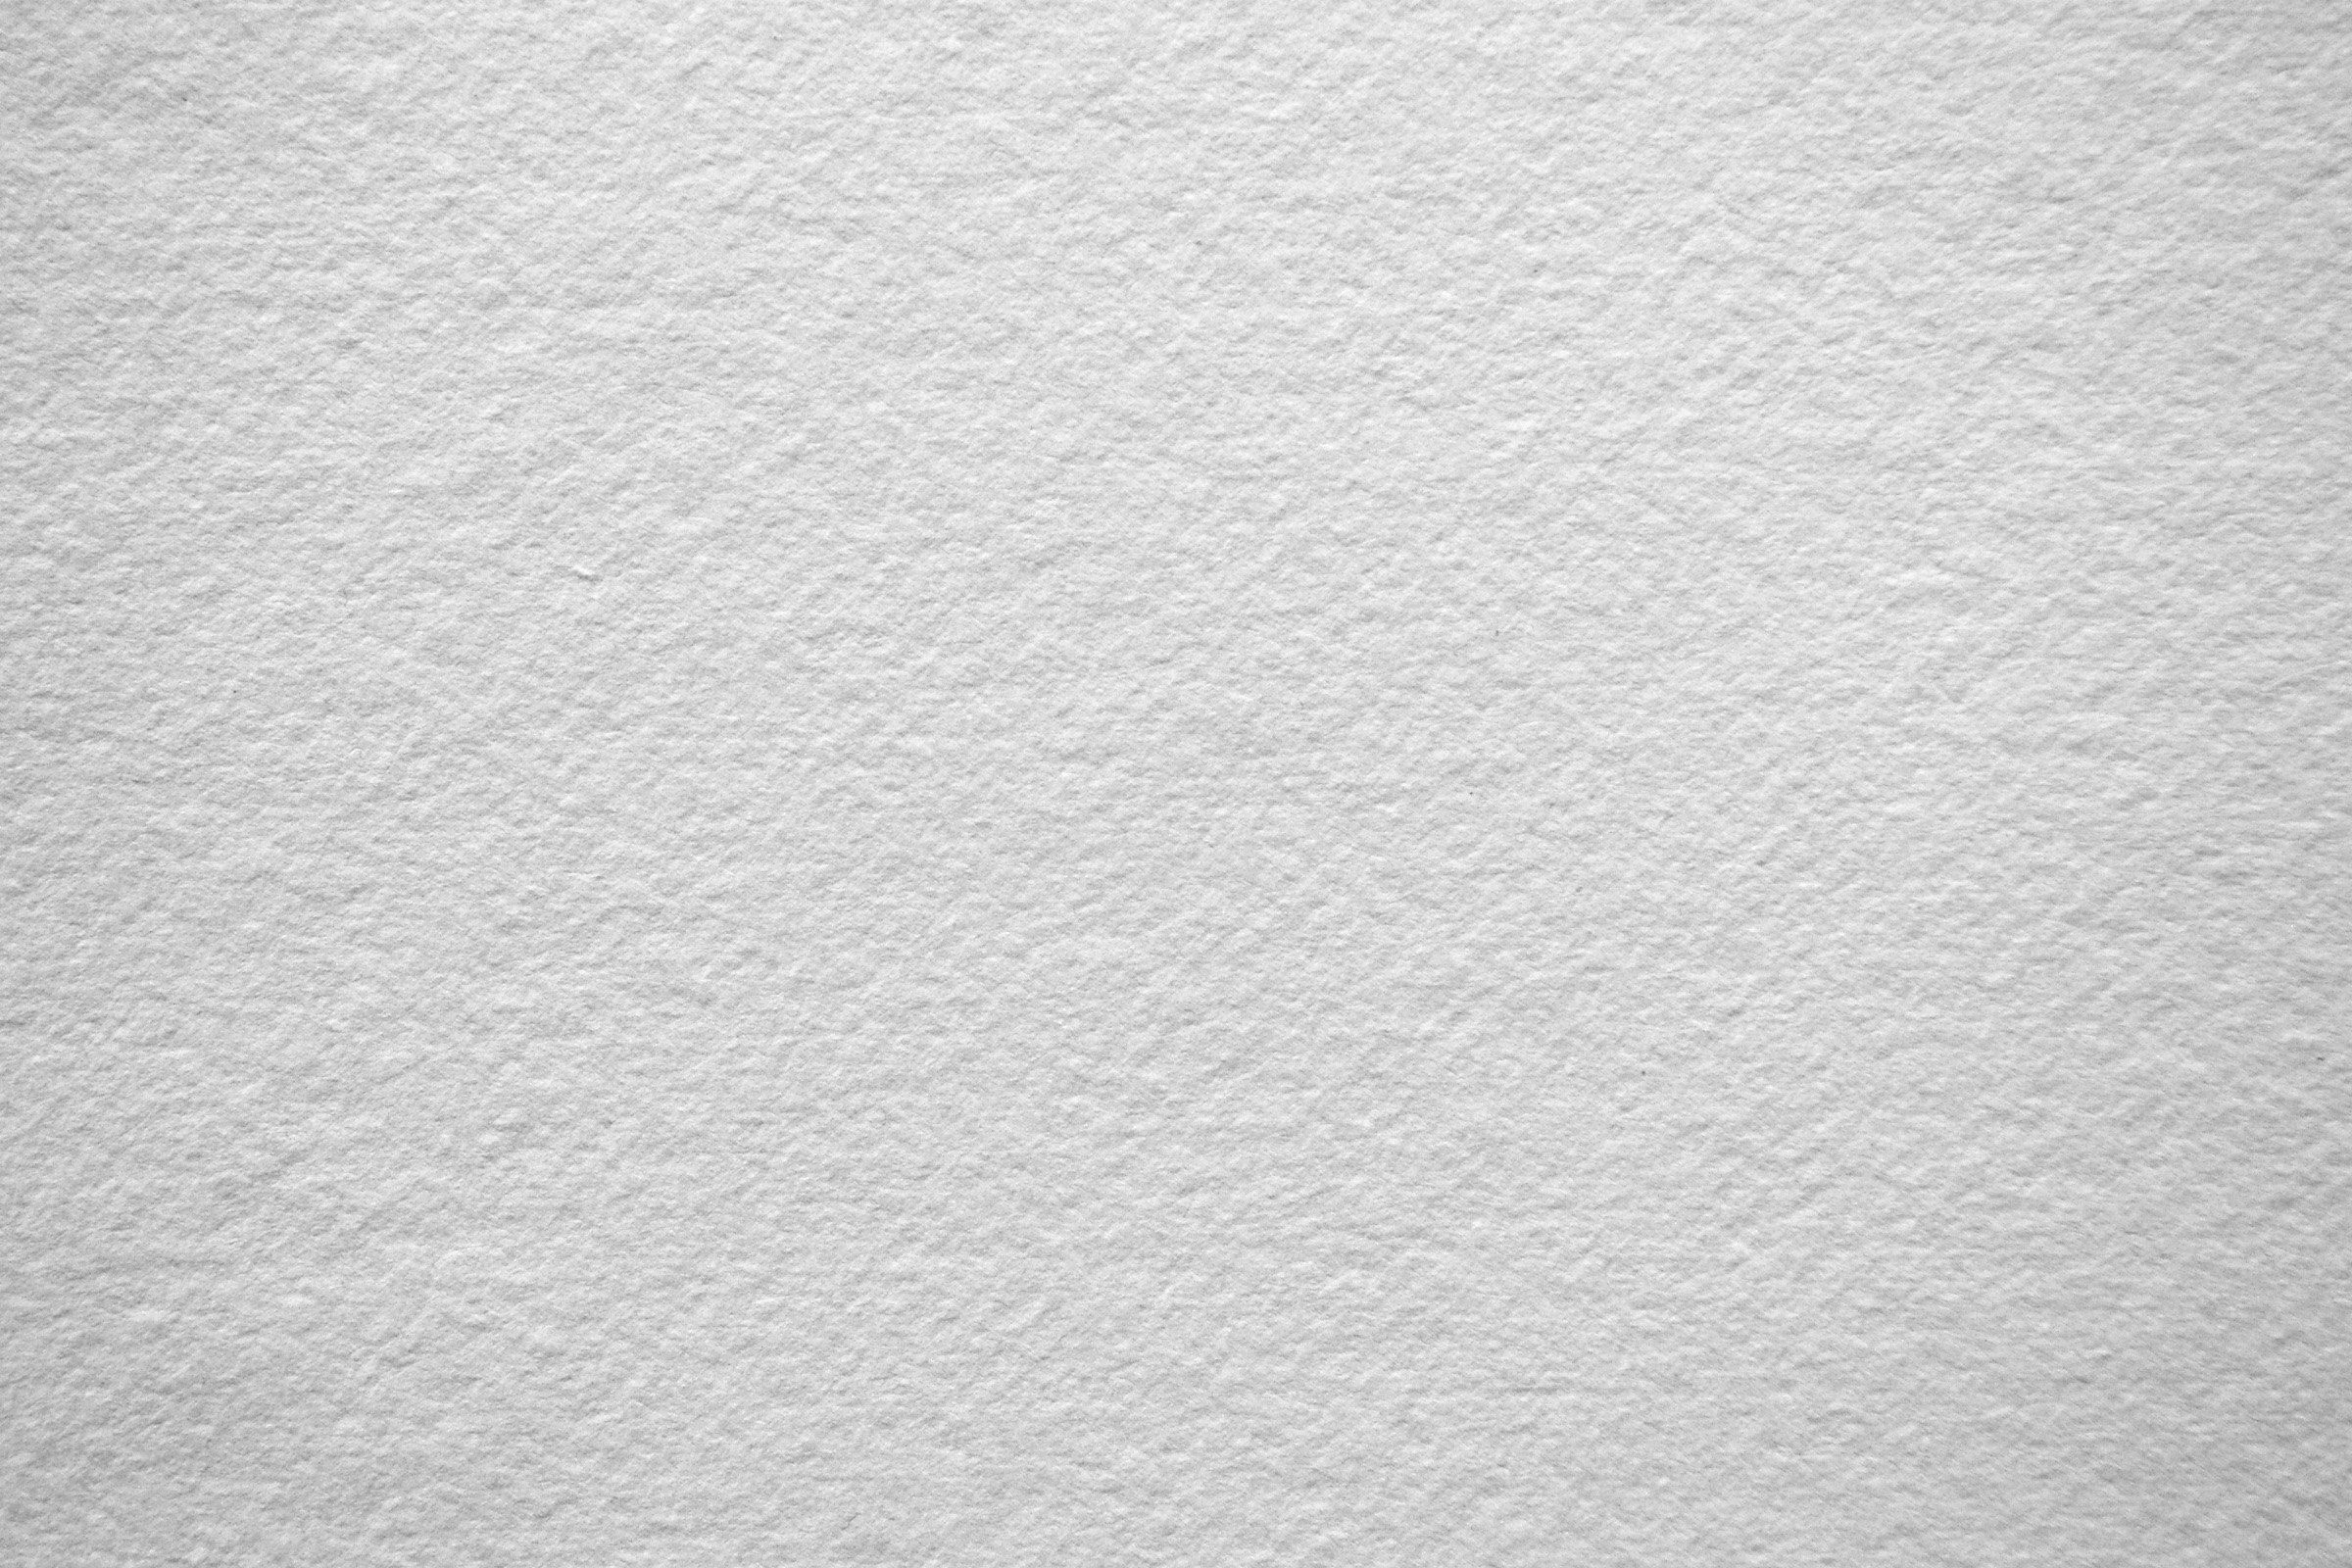 Free photo: Paper Texture Overlay - Abstract, Corner, Graphic - Free Download - Jooinn